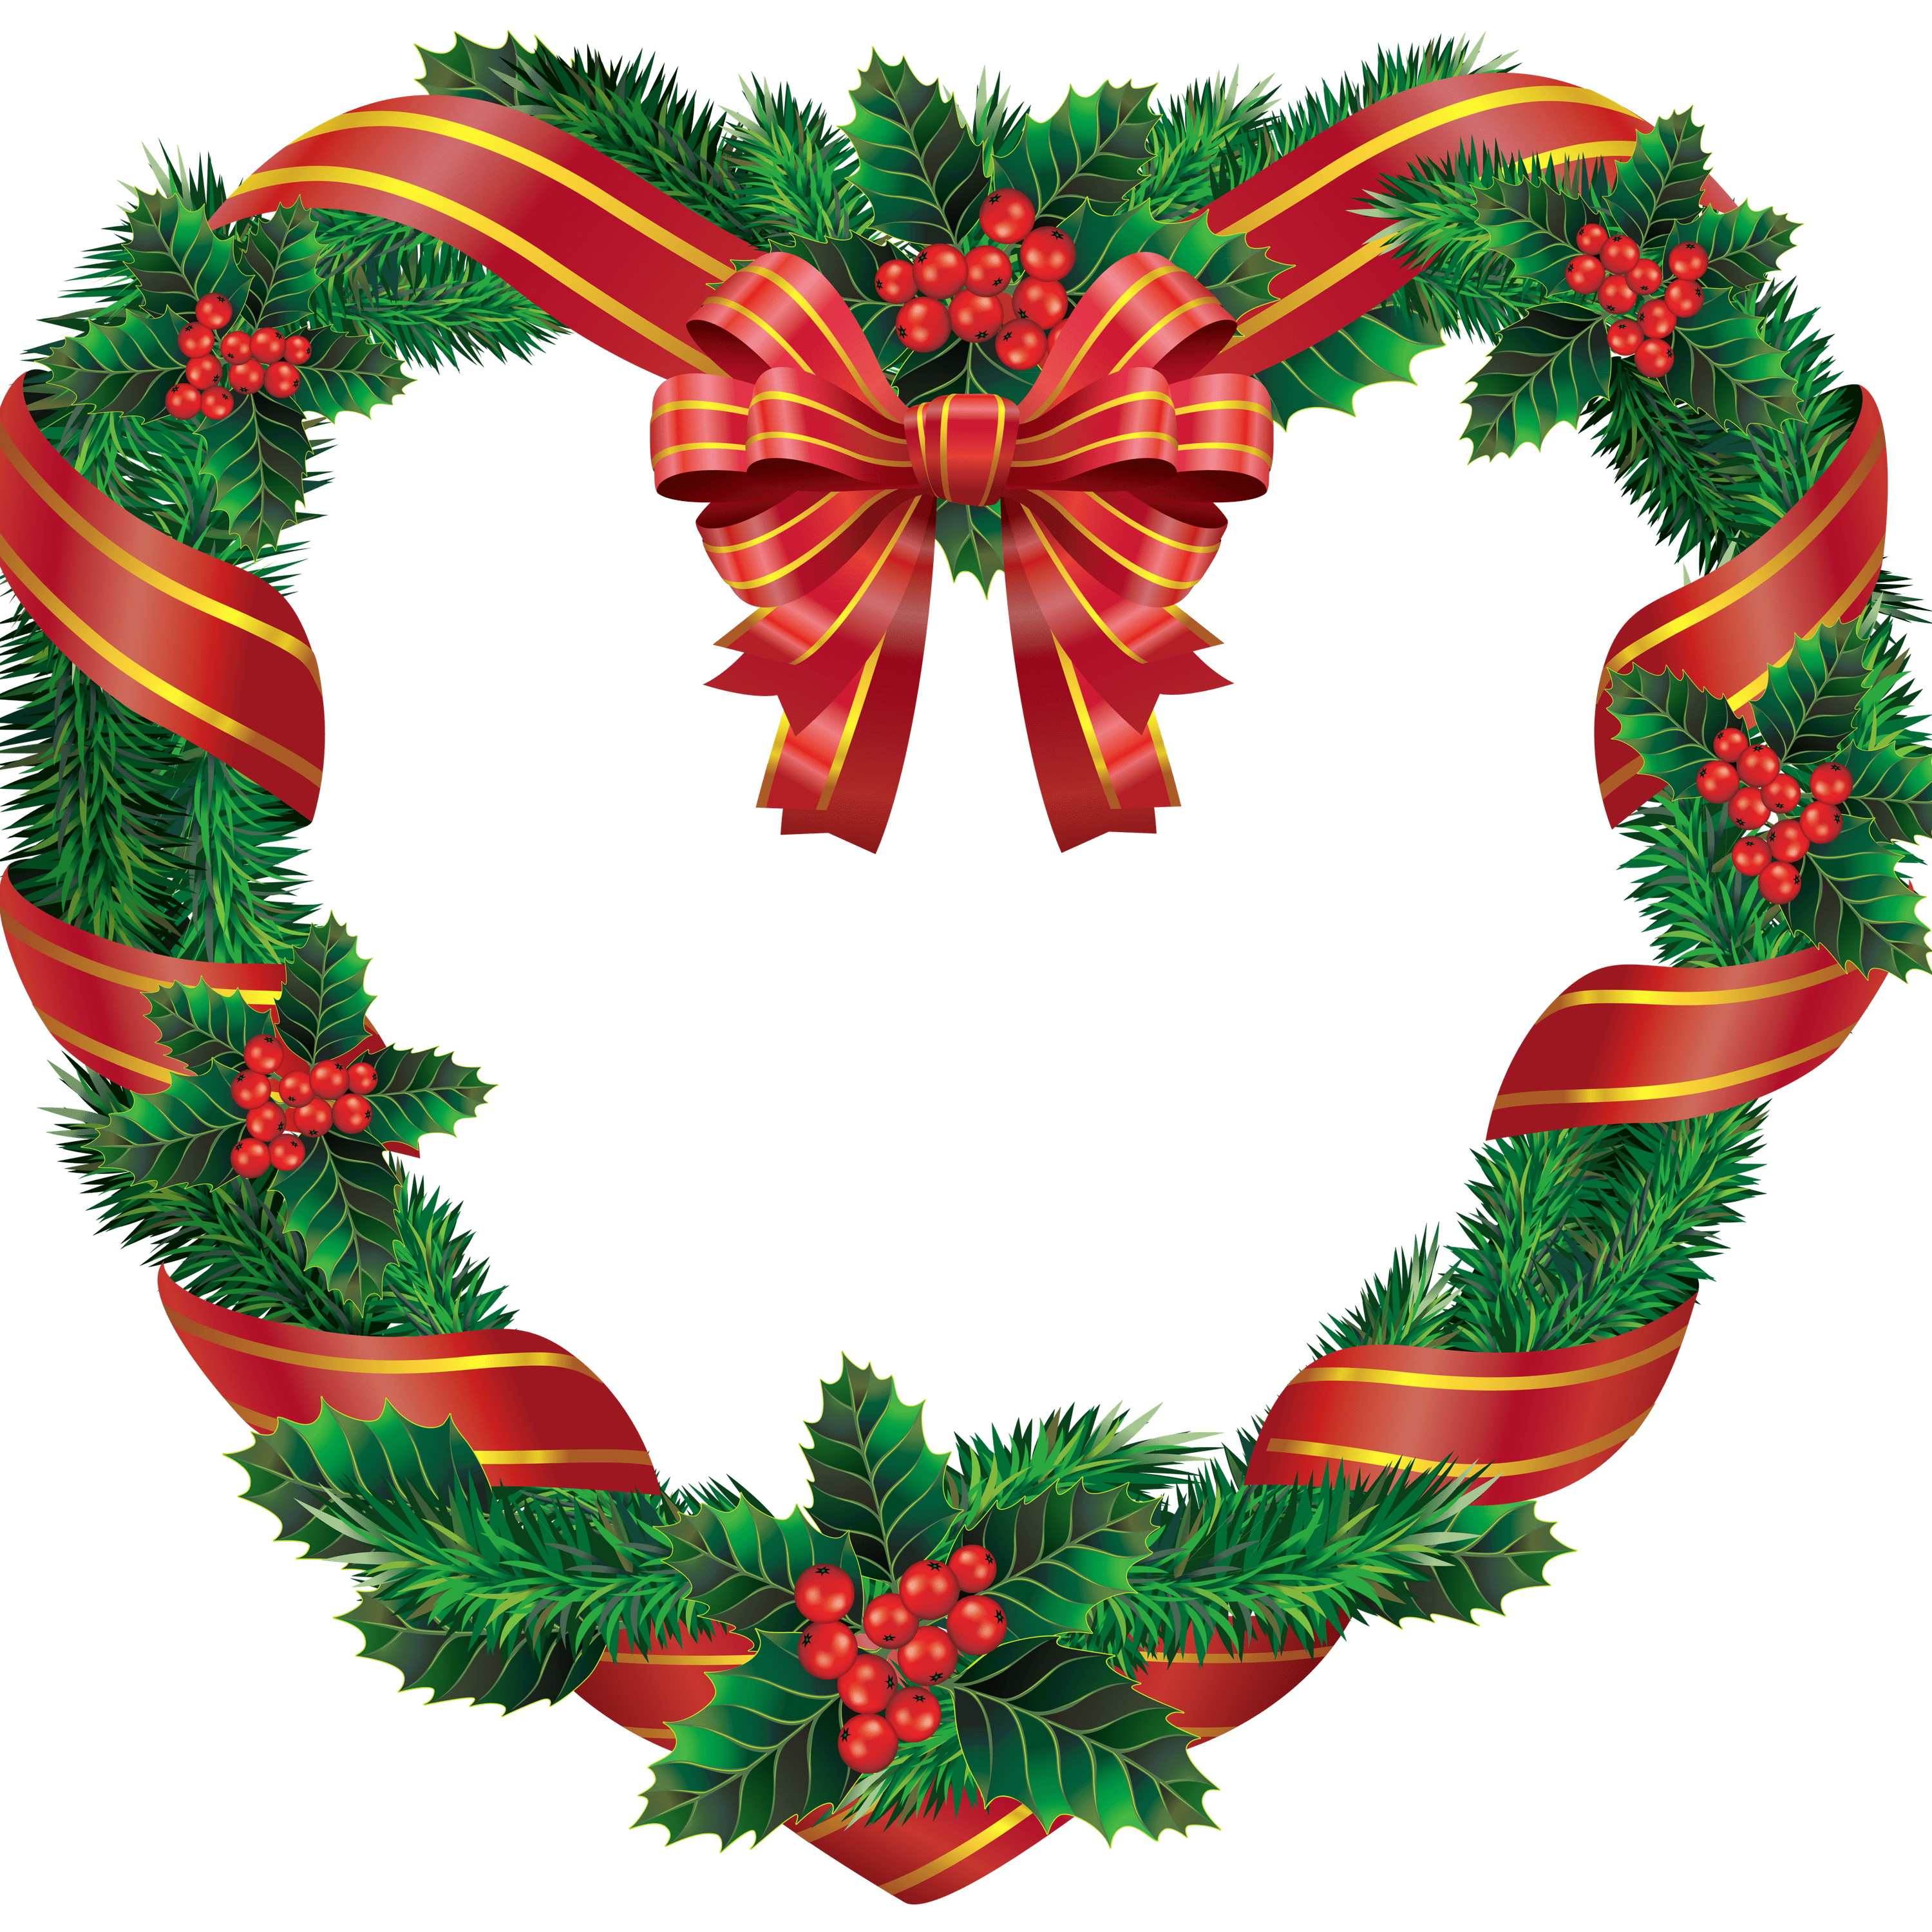 Free clipart wreath. Heart christmas transparent png